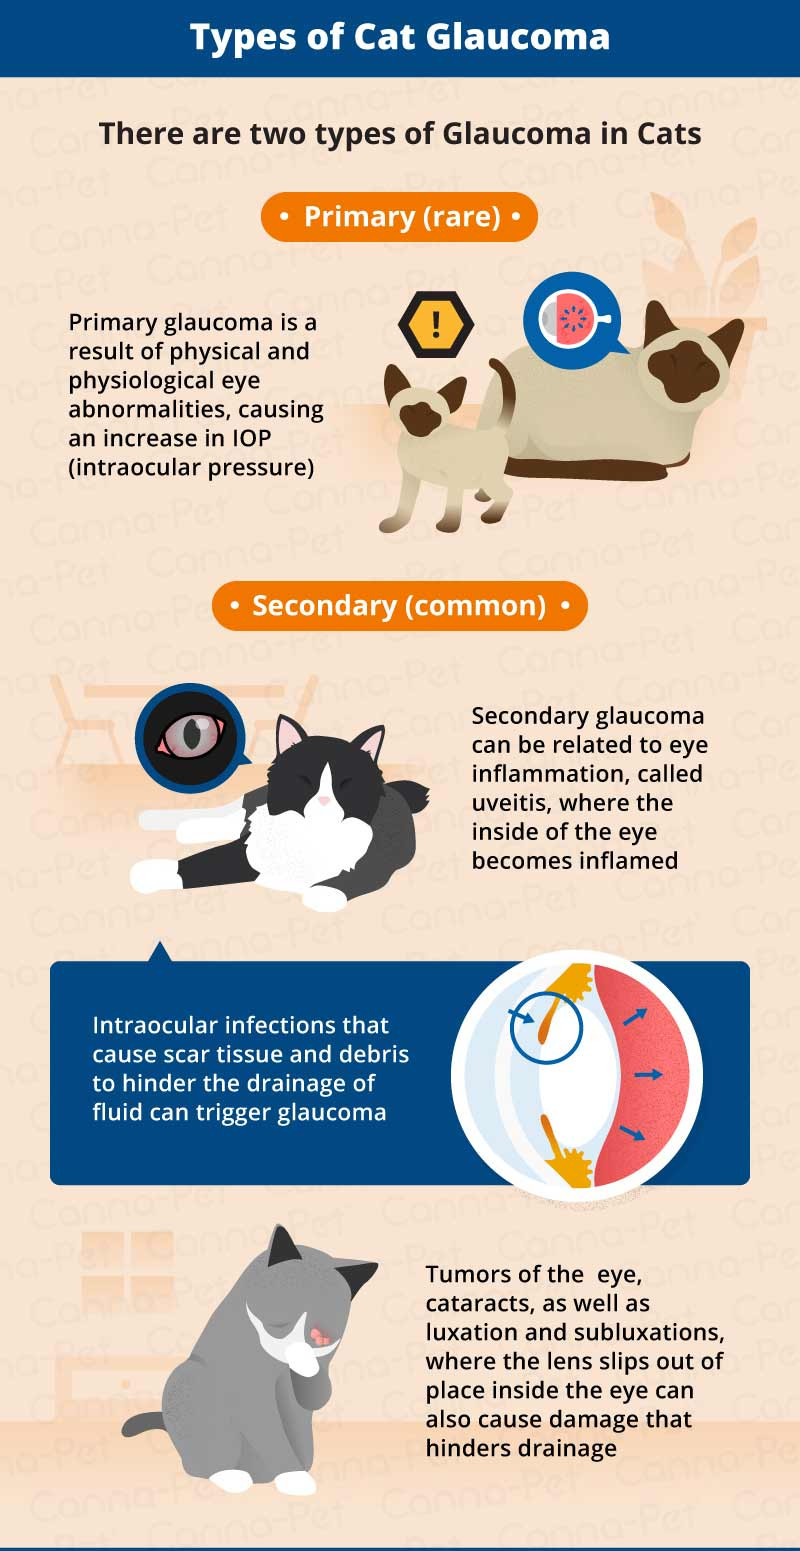 types of cat glaucoma